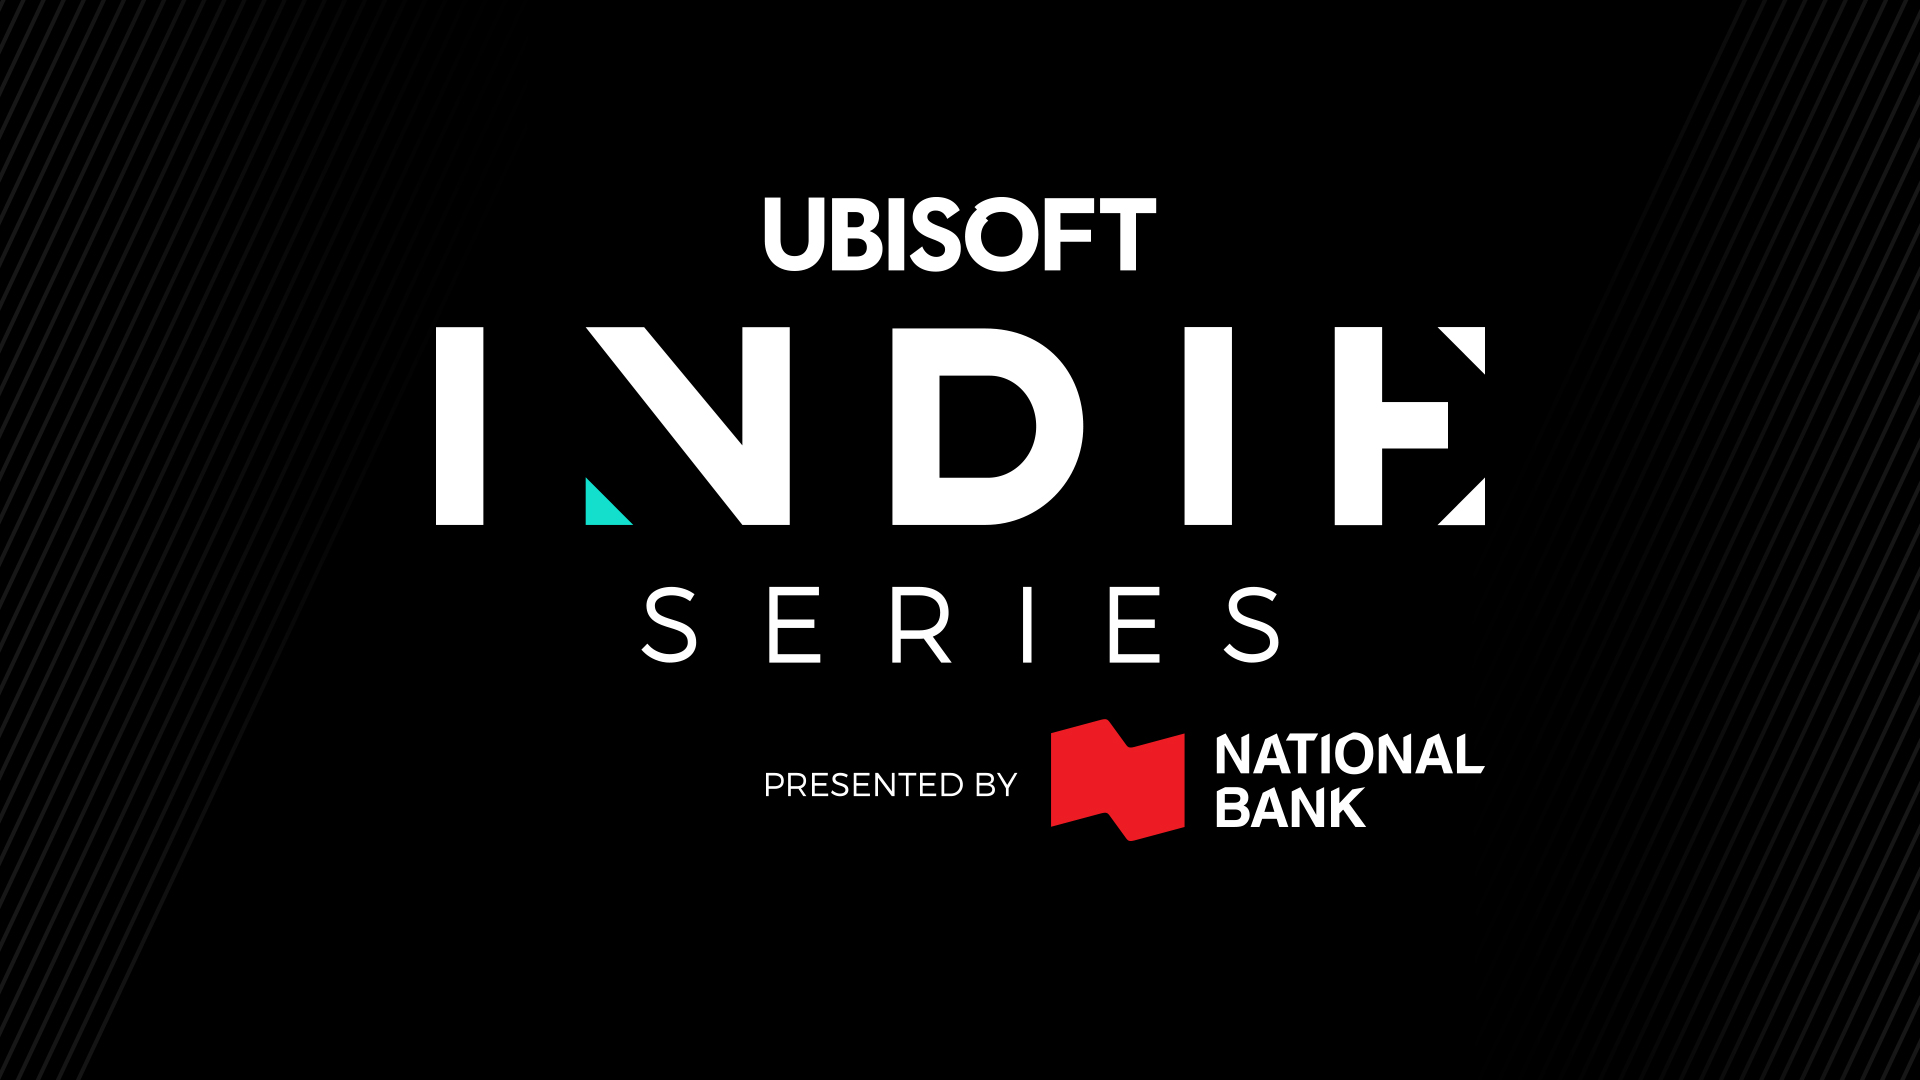 Ubisoft Indie Series presented by National Bank